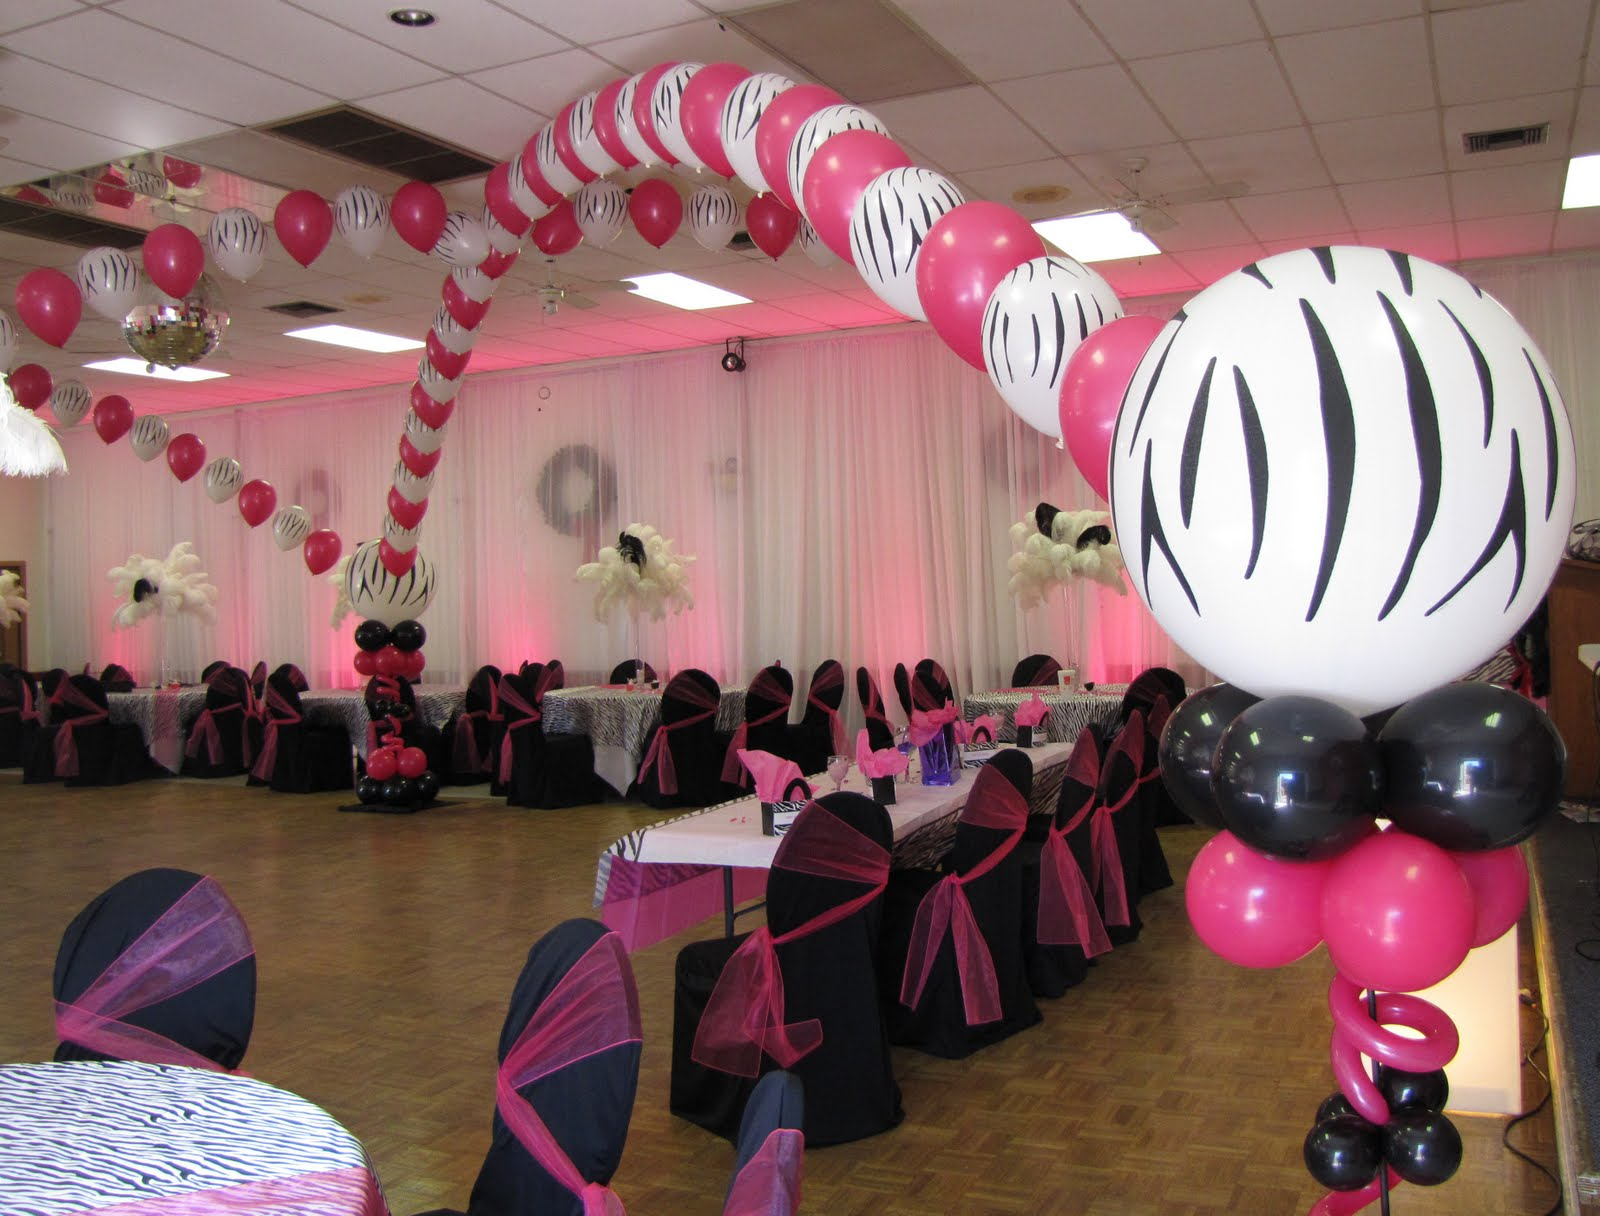 Party people event decorating company zebra sweet 16 for Balloon decoration ideas for sweet 16